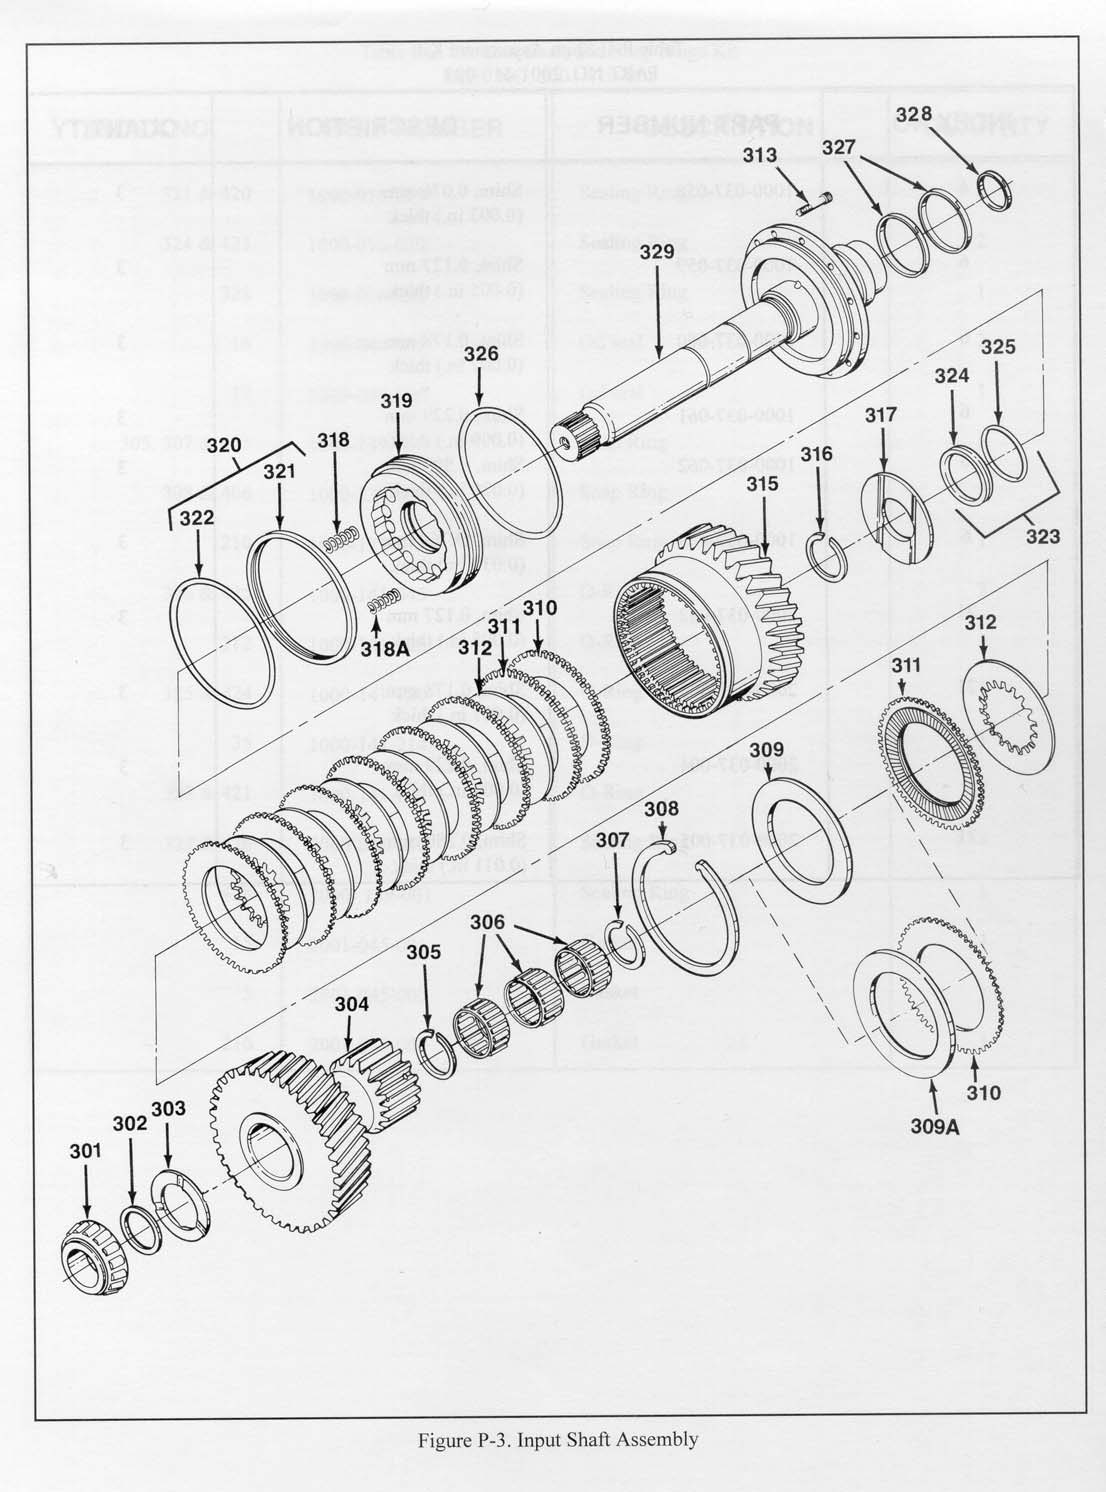 And General Information Pdf 302 Engine Diagram 20 Piston Washer 219 Only 218 Valve Late Production 218a Early 220 Screen 221 Pin Spring 222 Housing